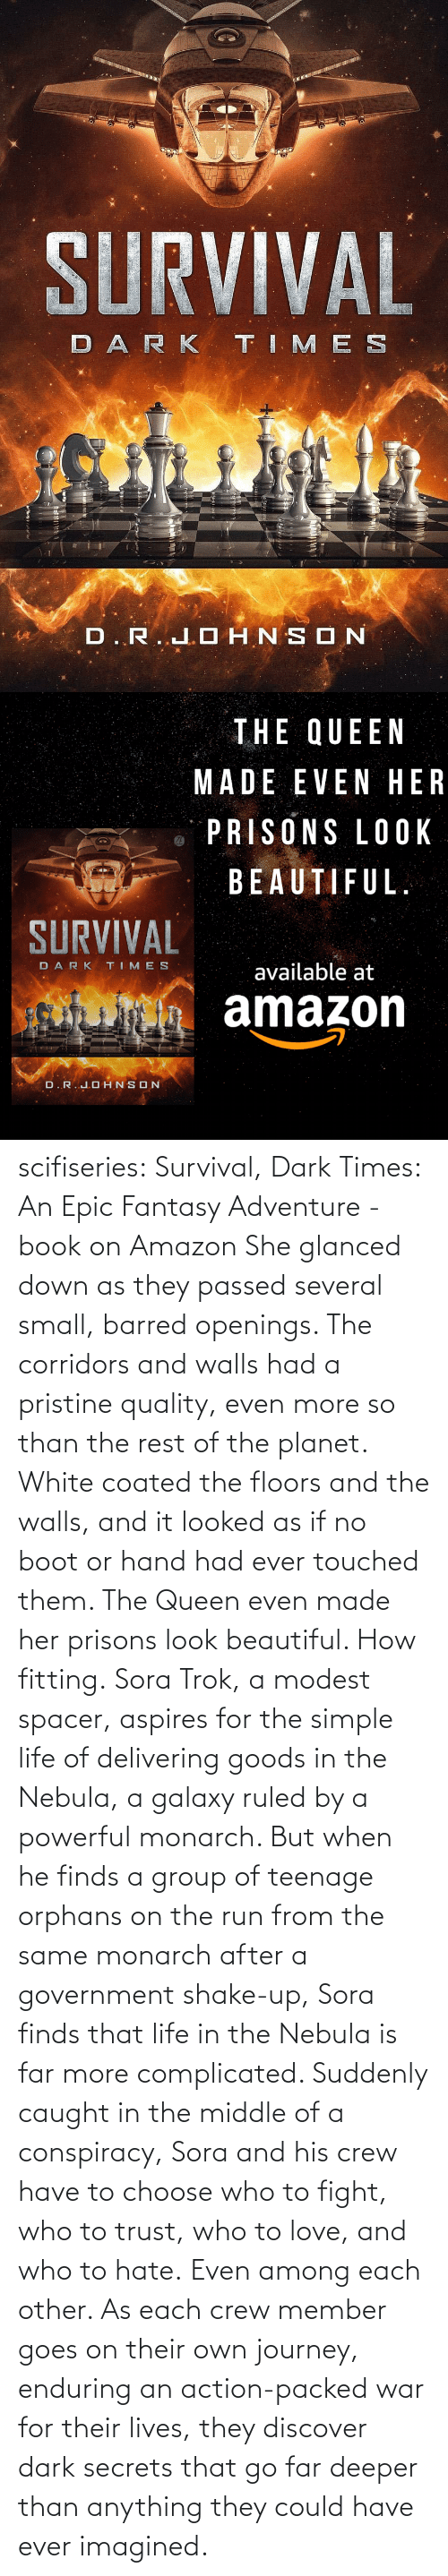 beautiful: scifiseries: Survival, Dark Times: An Epic Fantasy Adventure - book on Amazon  She glanced down as they  passed several small, barred openings. The corridors and walls had a  pristine quality, even more so than the rest of the planet. White coated  the floors and the walls, and it looked as if no boot or hand had ever  touched them.  The Queen even made her prisons look beautiful.  How fitting. Sora  Trok, a modest spacer, aspires for the simple life of delivering goods  in the Nebula, a galaxy ruled by a powerful monarch. But when he finds a  group of teenage orphans on the run from the same monarch after a  government shake-up, Sora finds that life in the Nebula is far more complicated.  Suddenly  caught in the middle of a conspiracy, Sora and his crew have to choose  who to fight, who to trust, who to love, and who to hate. Even among each other.  As  each crew member goes on their own journey, enduring an action-packed  war for their lives, they discover dark secrets that go far deeper than  anything they could have ever imagined.